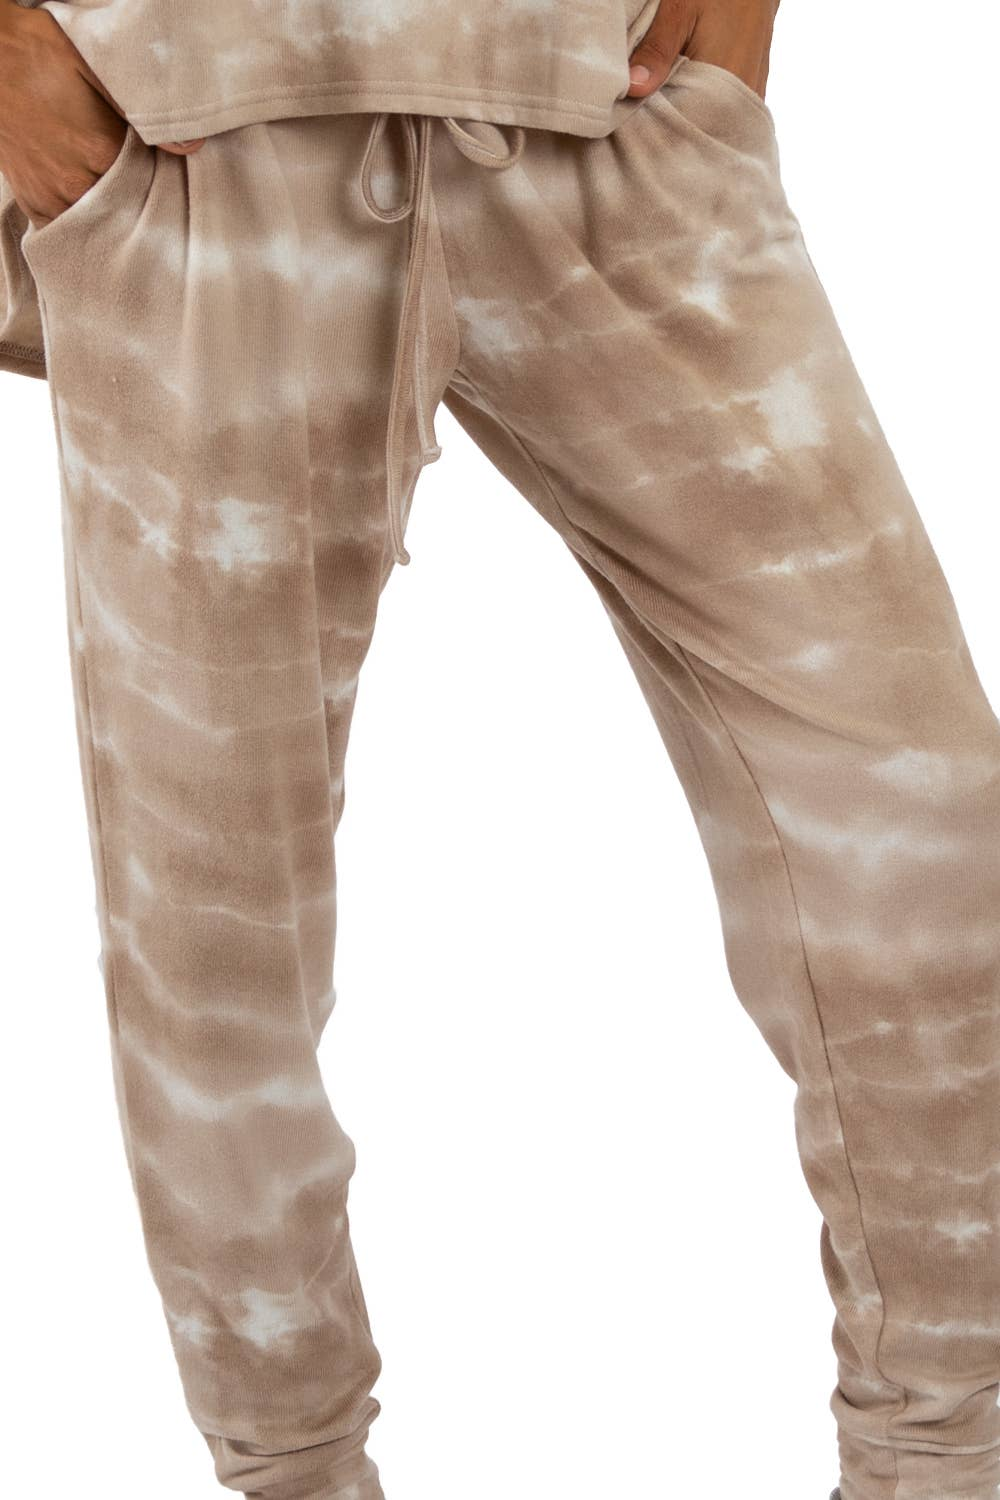 JOGGERS - Taupe Tie Dye